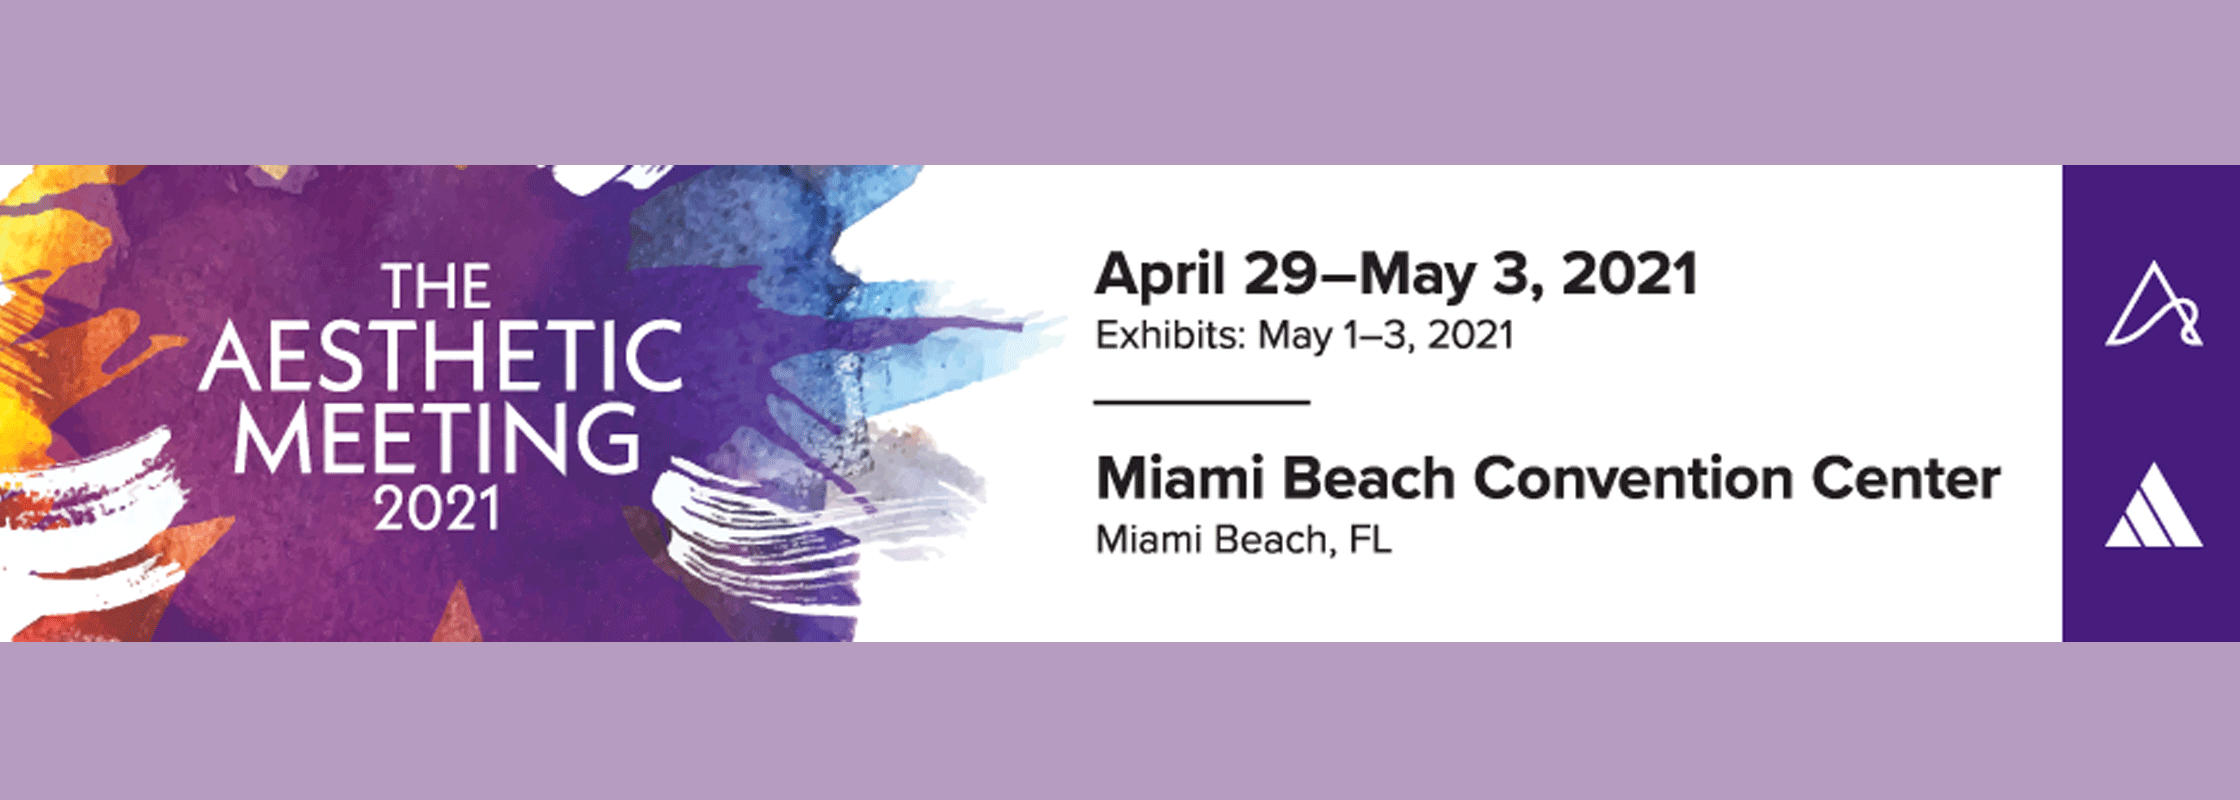 Join Etna Interactive at the Aesthetic Meeting 2021 in Miami Beach, FL